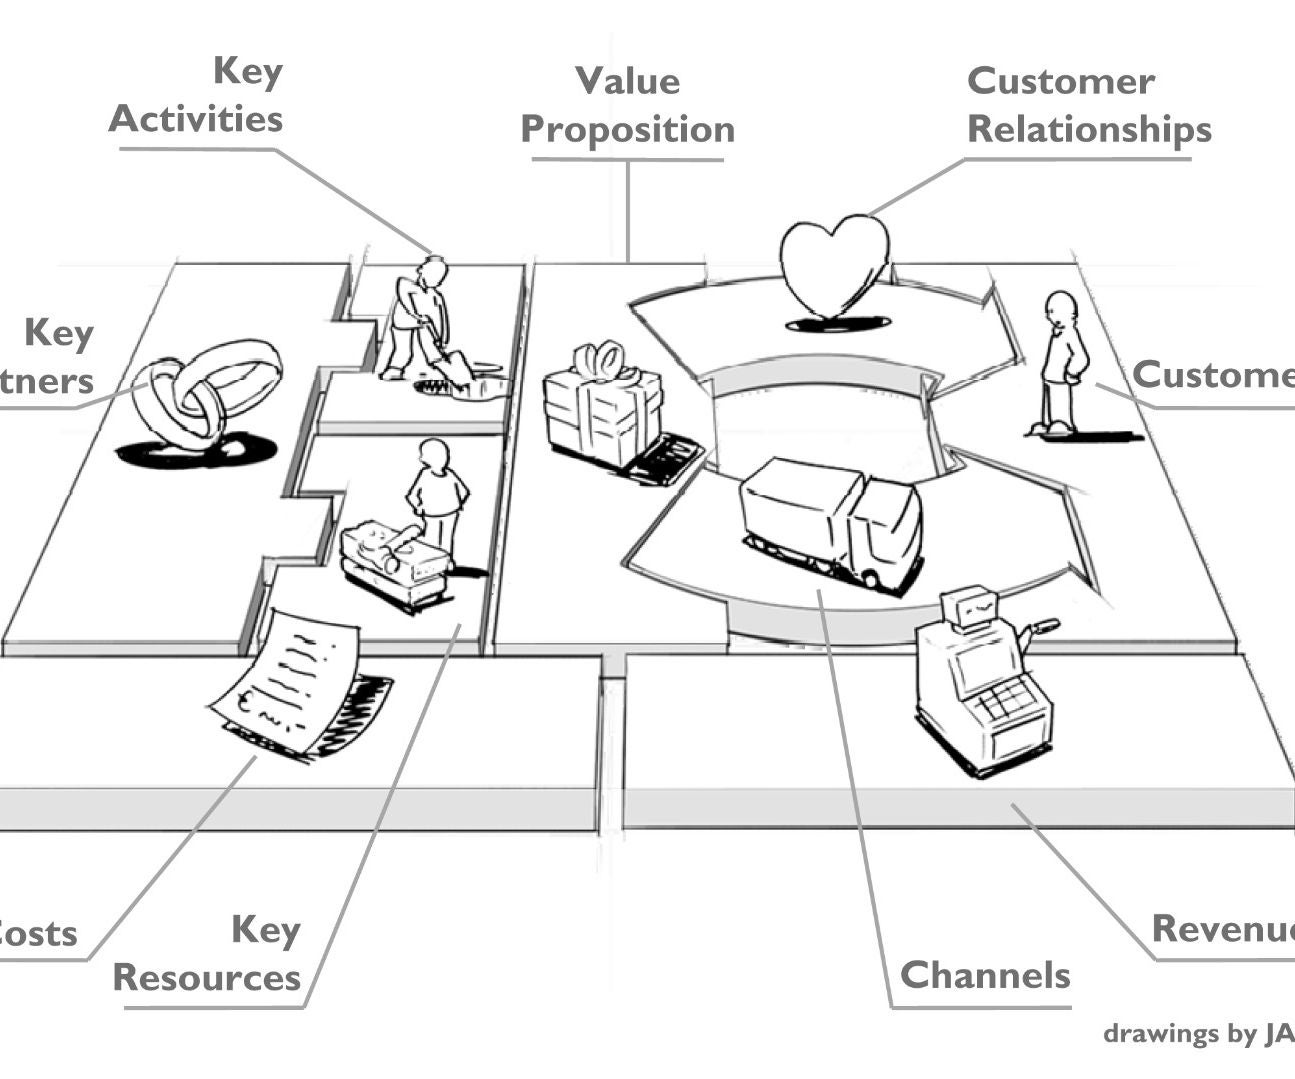 How to Make a Business Model Canvas: 9 Steps